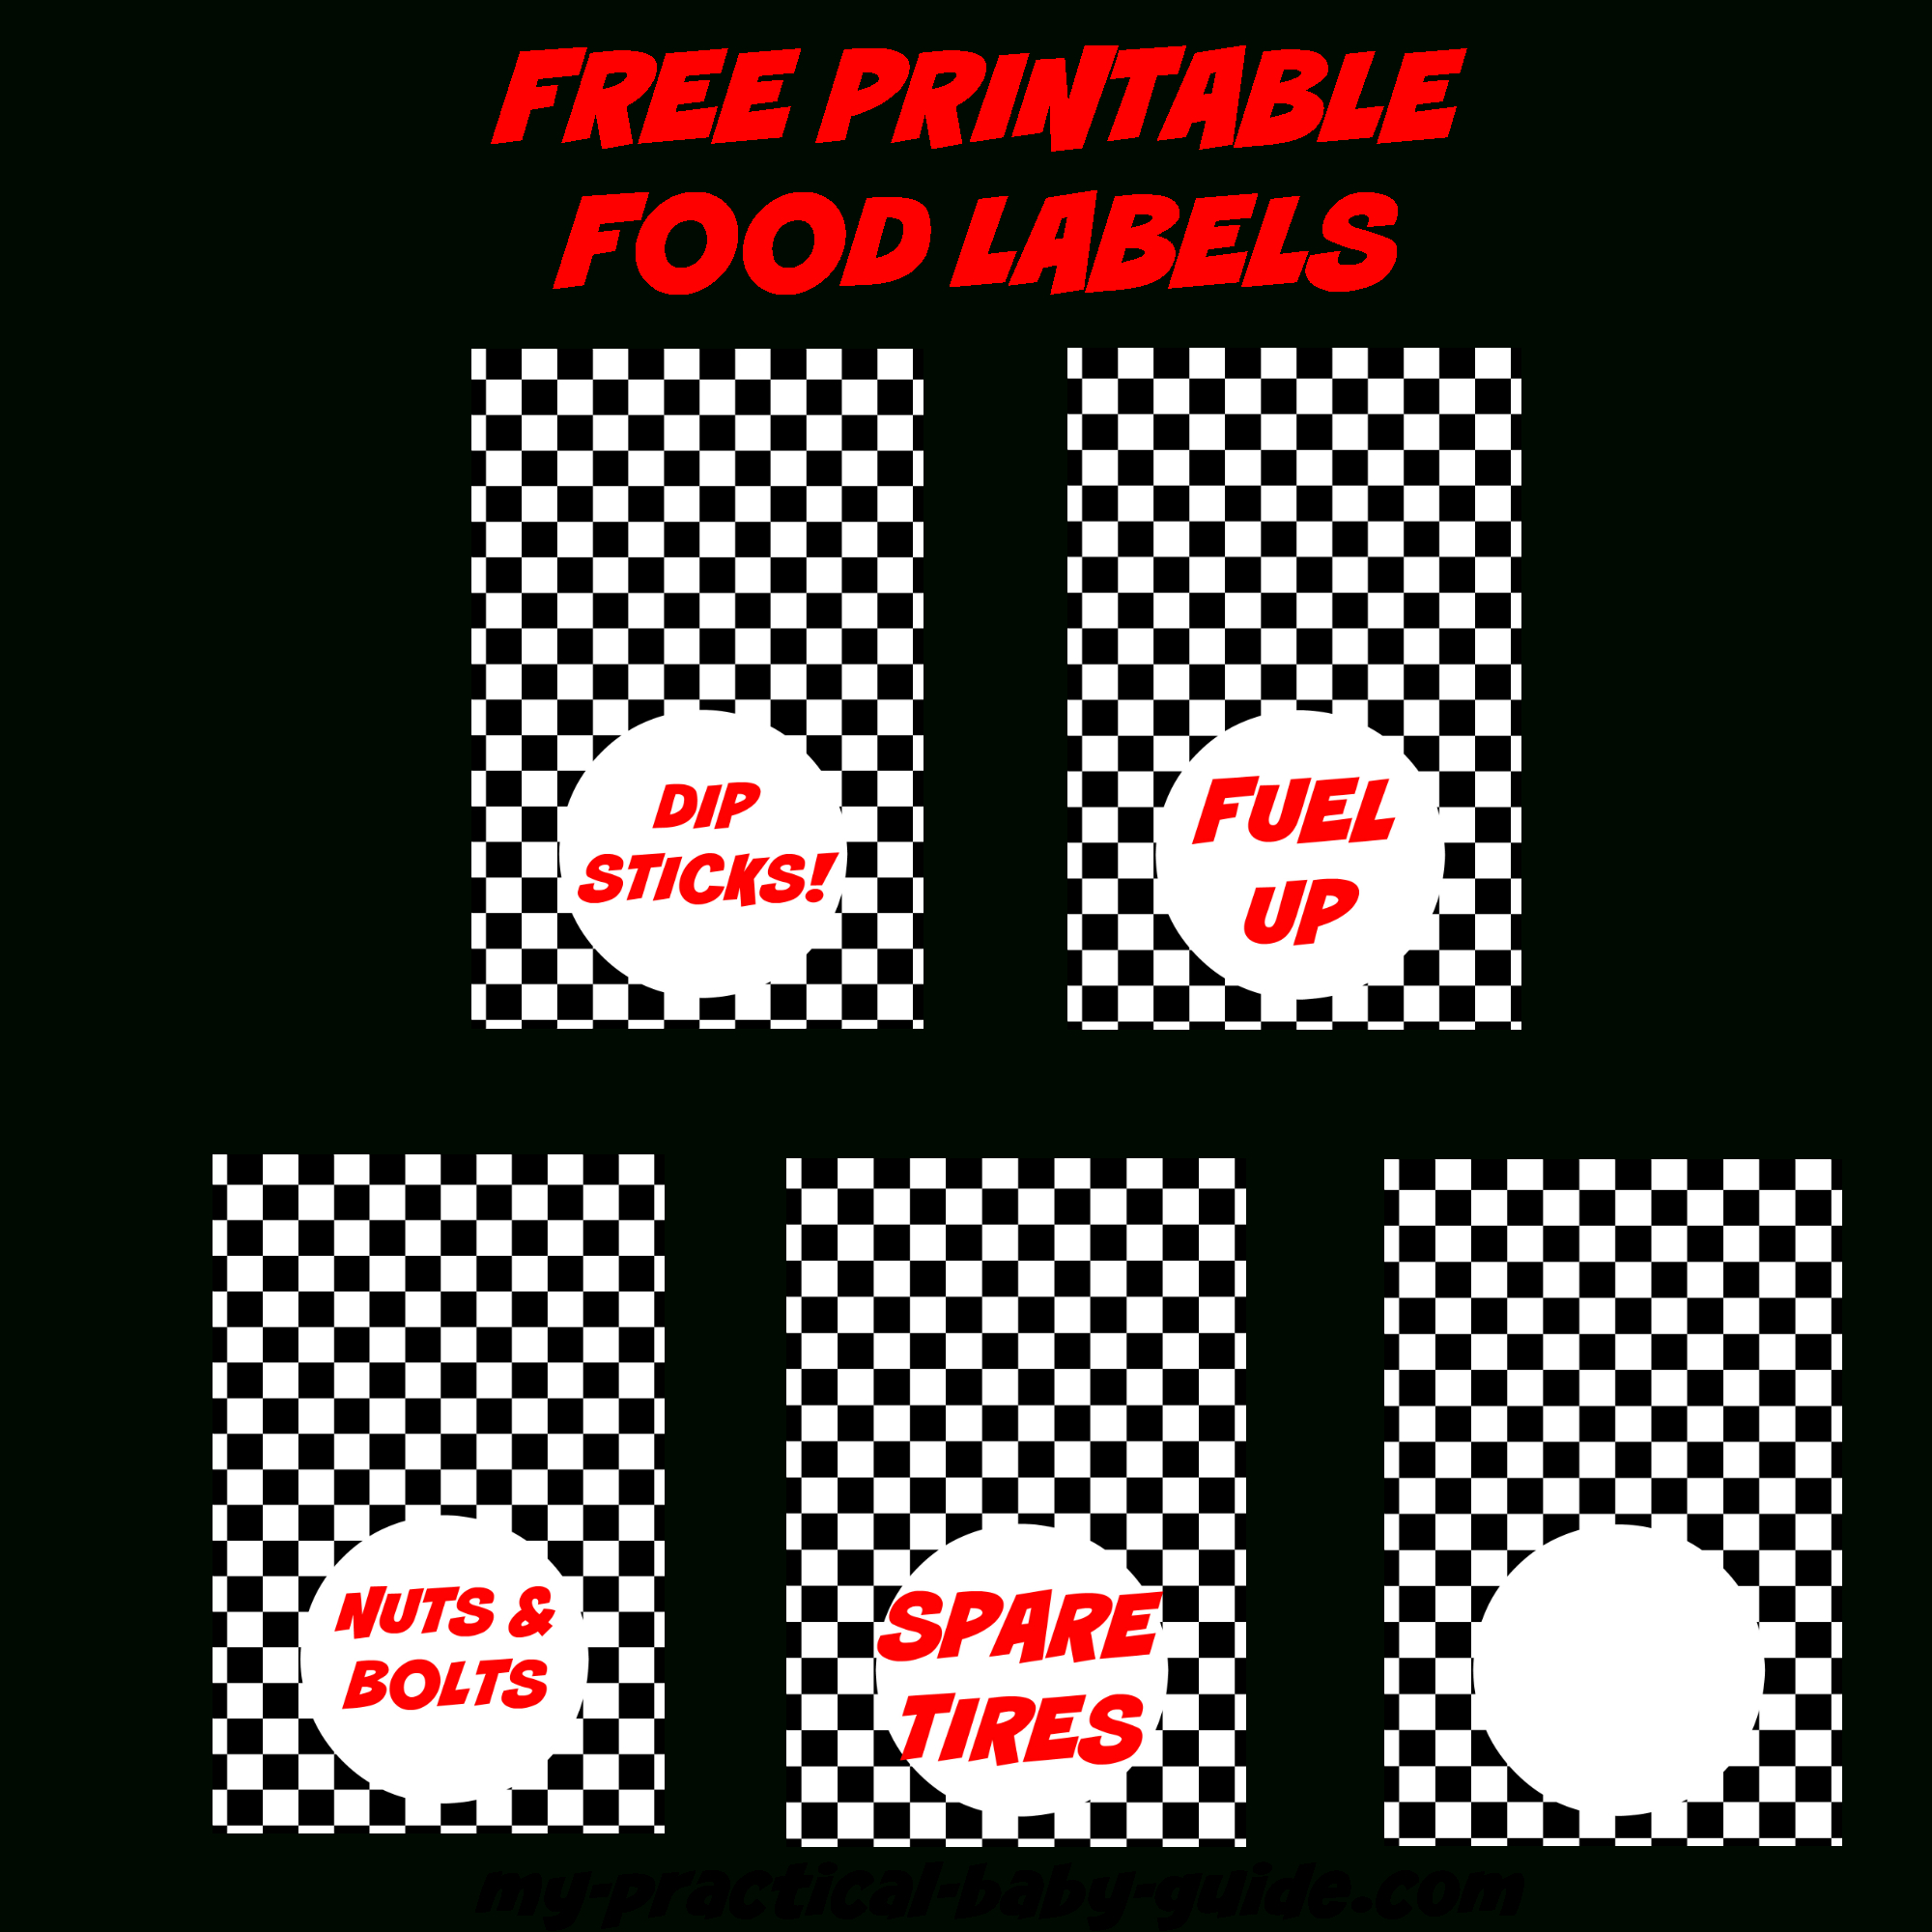 Coolest Car Birthday Ideas - My Practical Birthday Guide In 2019 - Free Printable Cars Food Labels